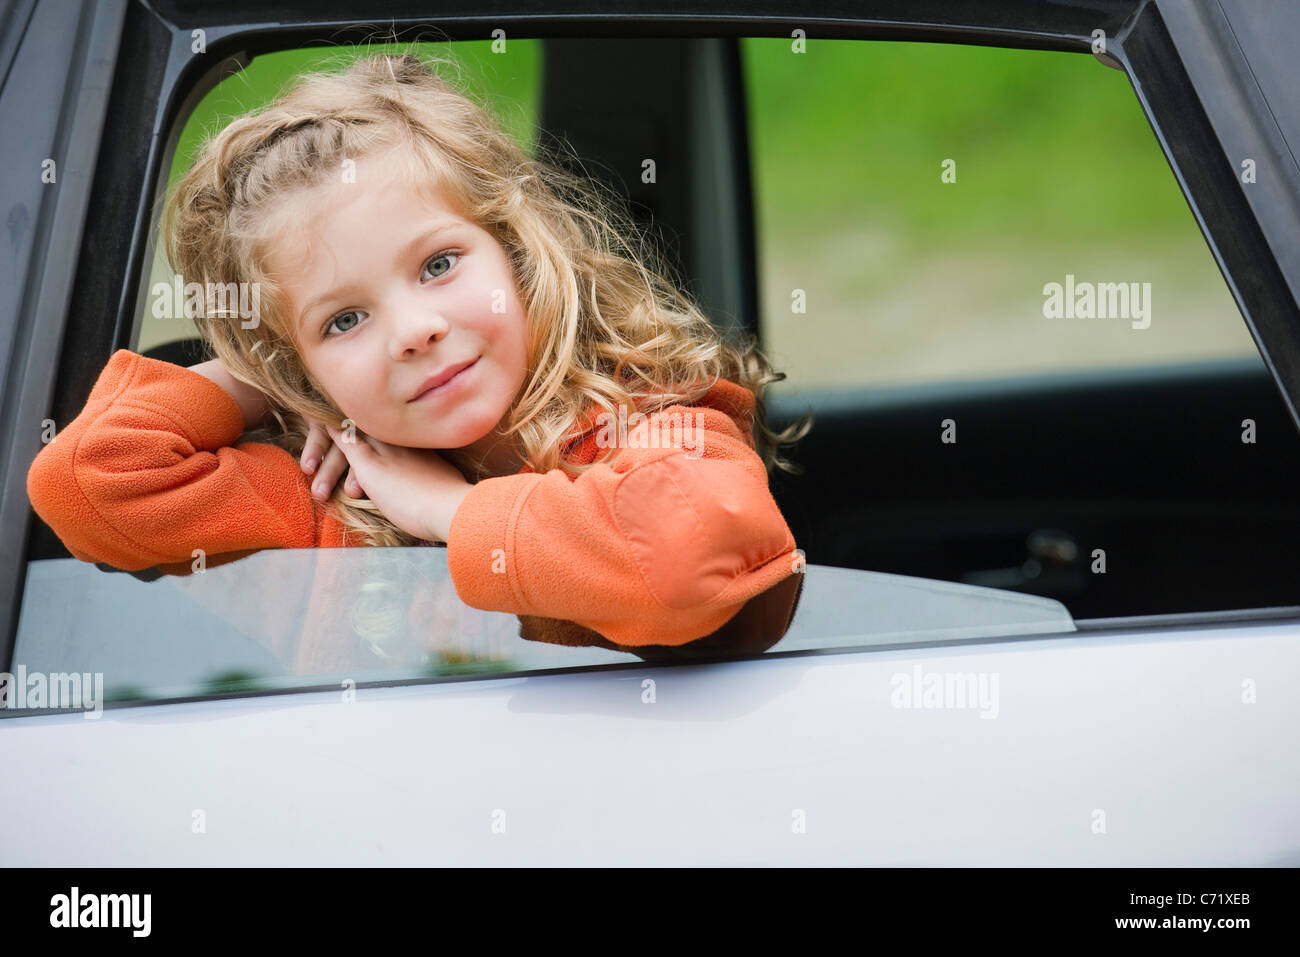 Little girl leaning out car window, portrait Stock Photo